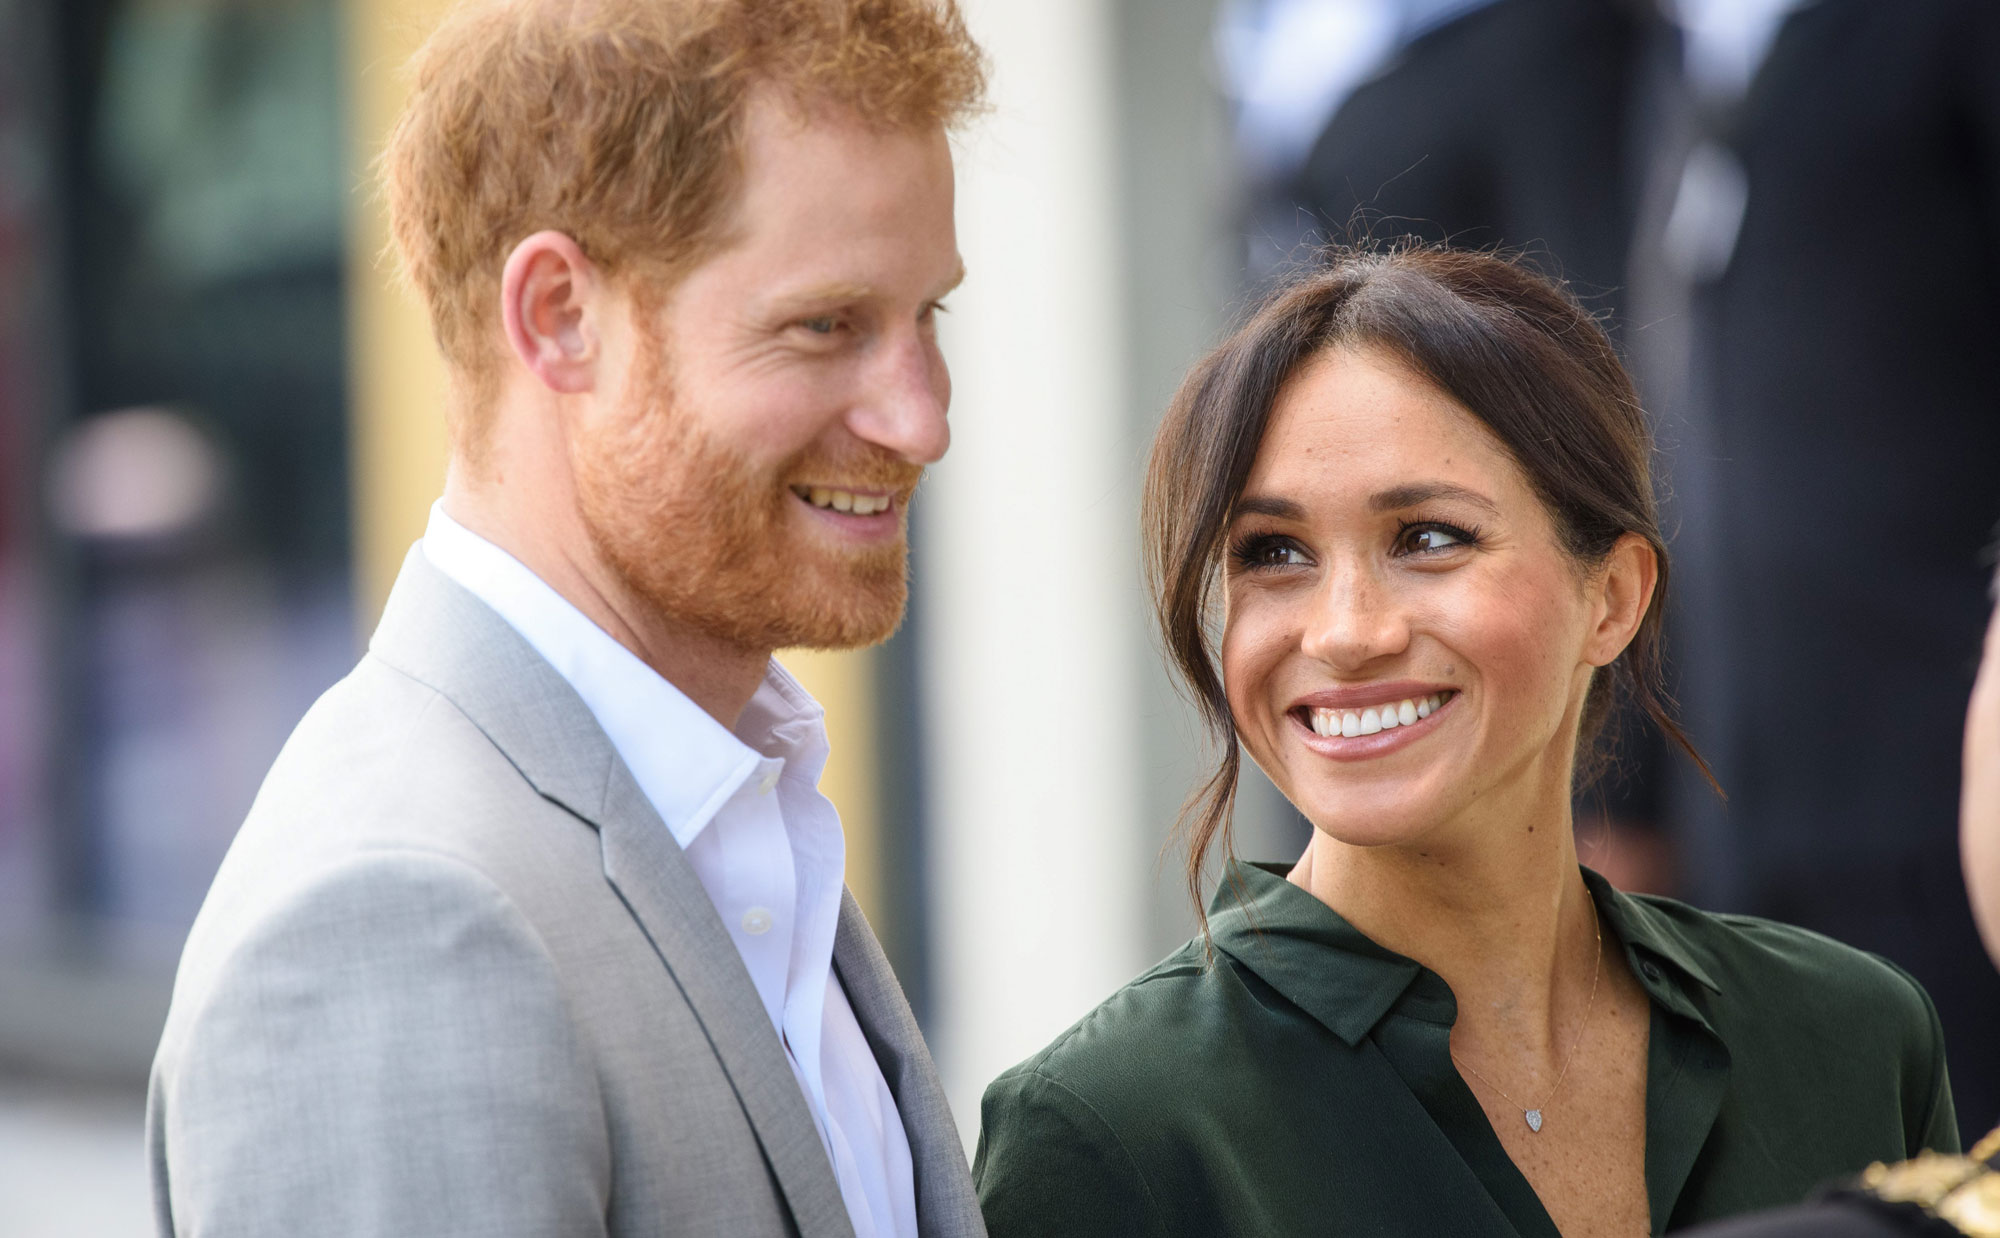 Prince Harry, Meghan Markle expecting first baby